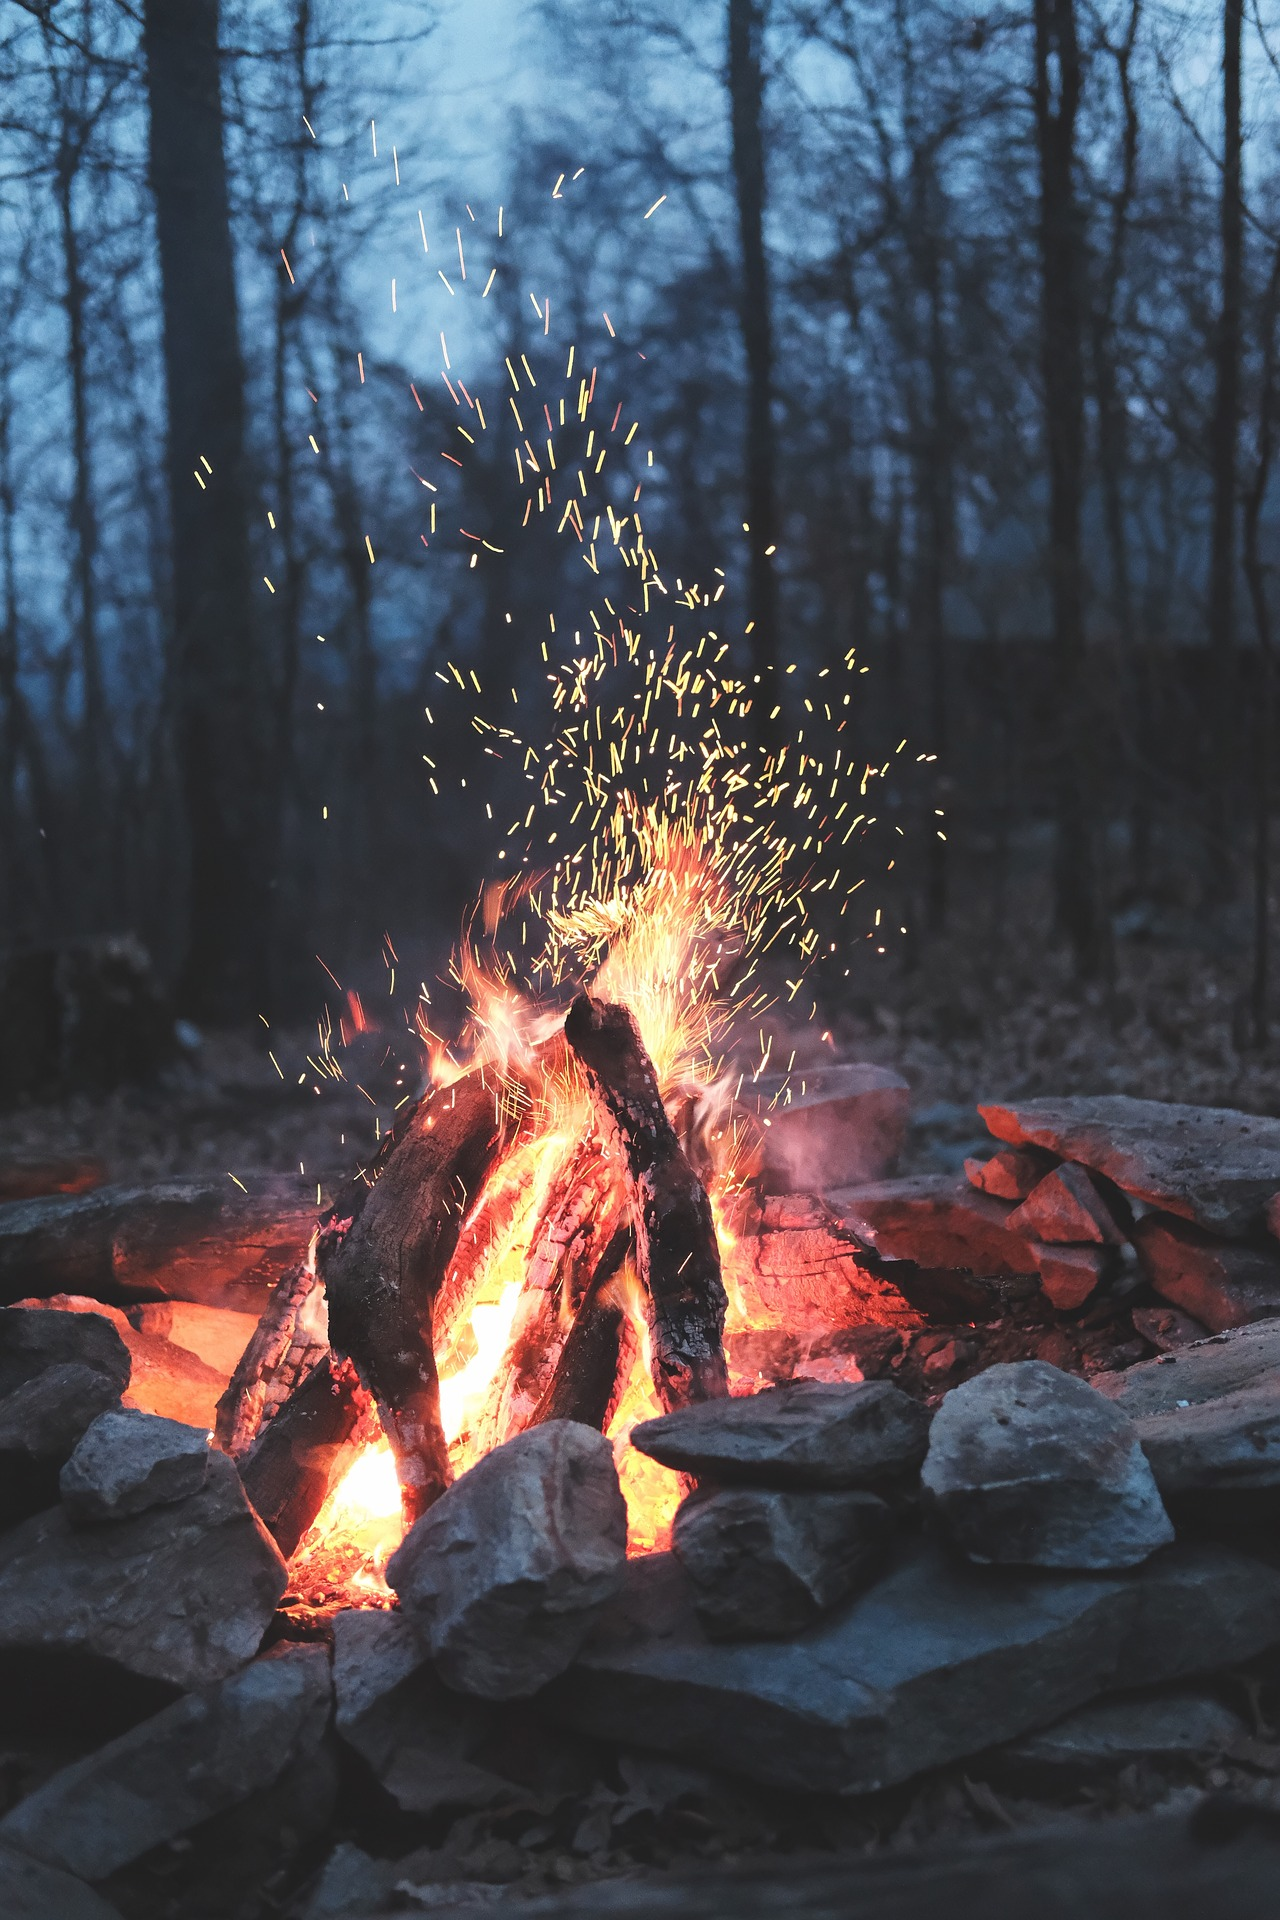 9 Fire Safety Tips To Help You Enjoy Outdoor Fires And Fire Pits Cascade Cadence